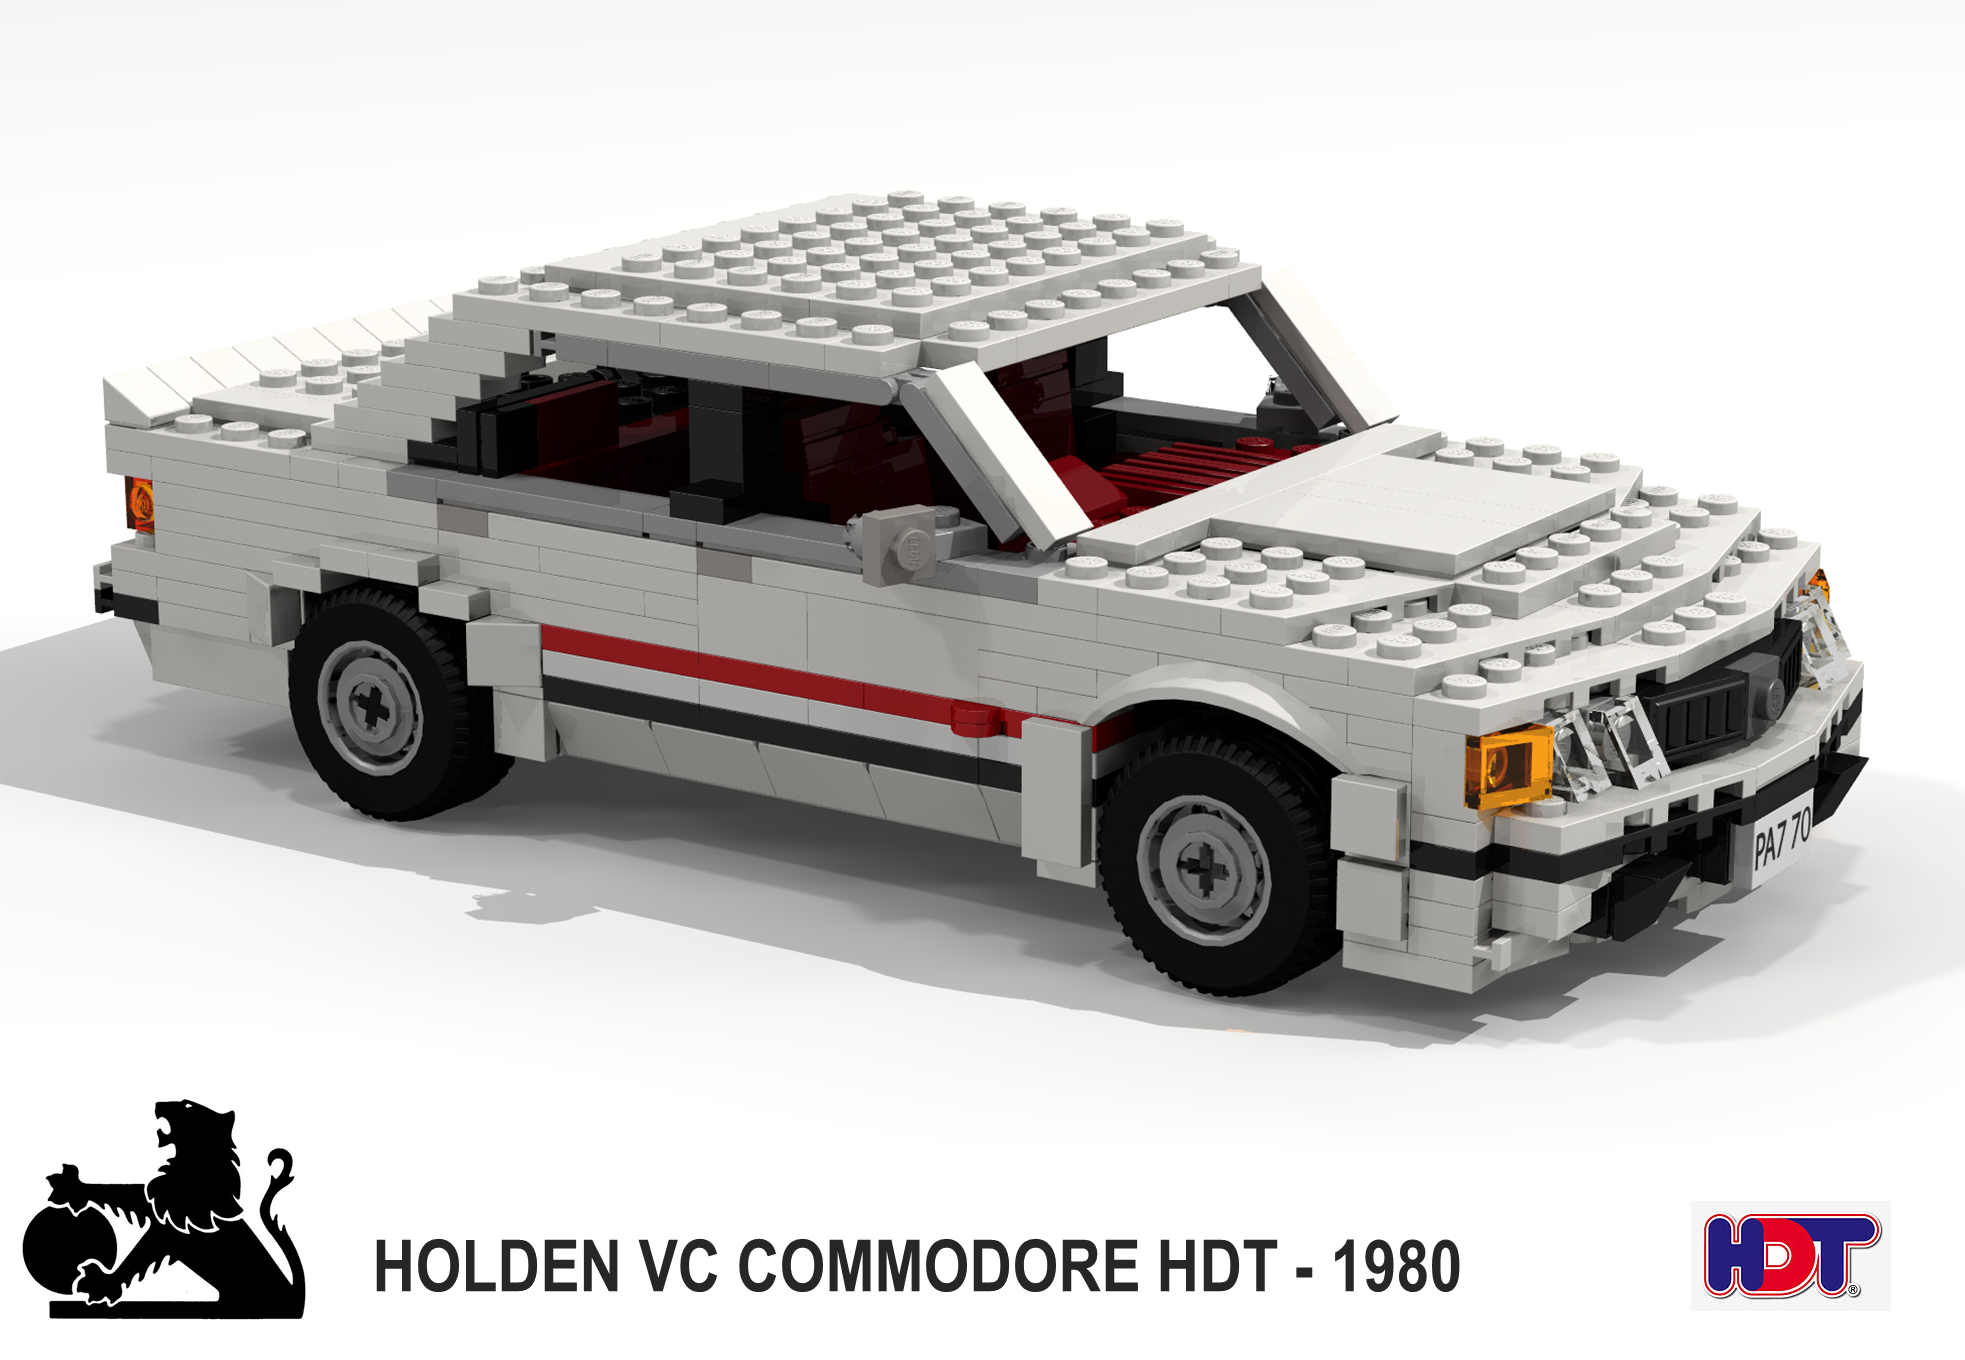 1980_holden_vc_commodore_hdt.png